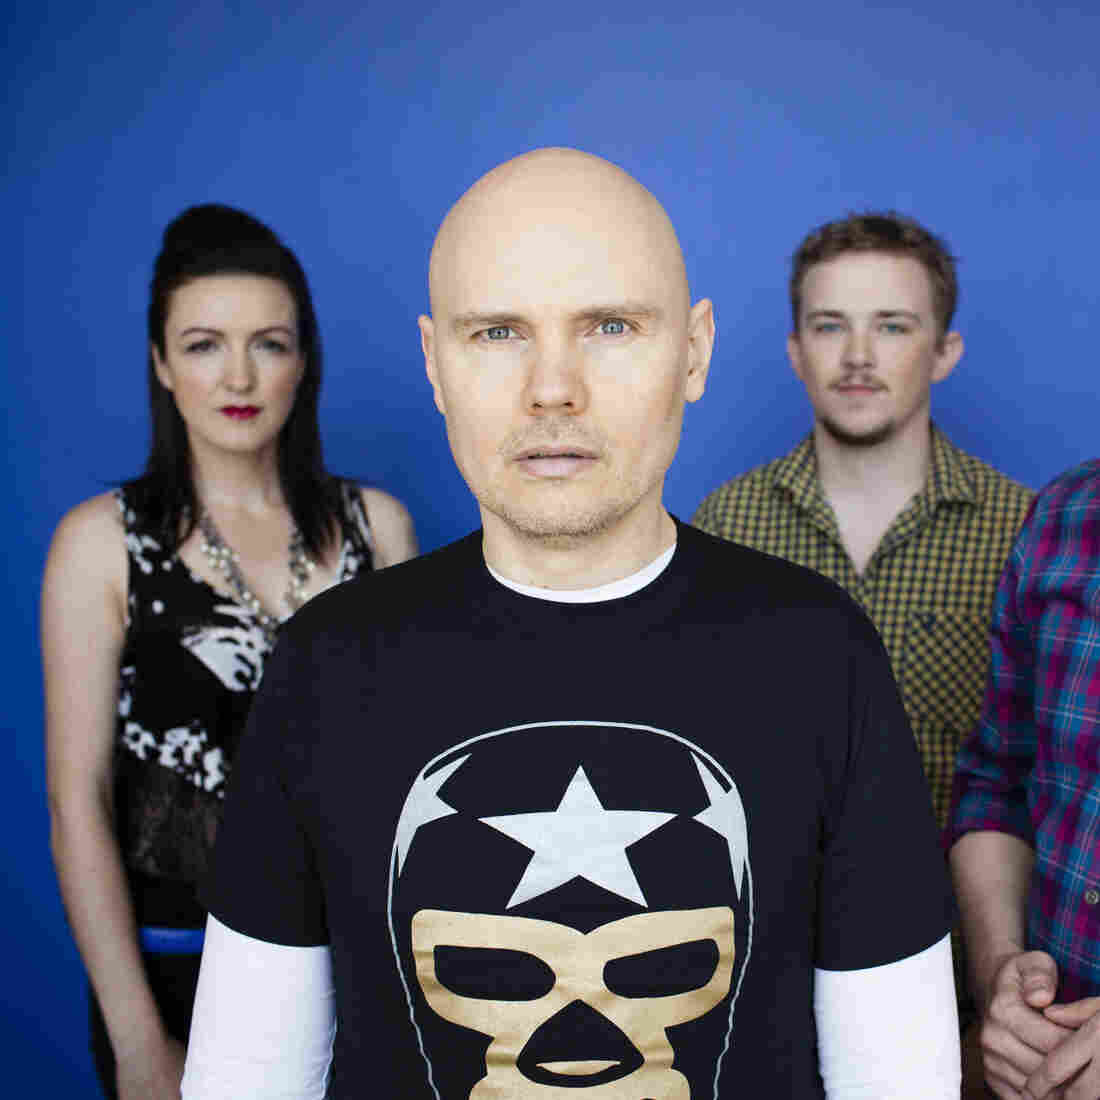 The Smashing Pumpkins: Making Peace With The Immediate Past